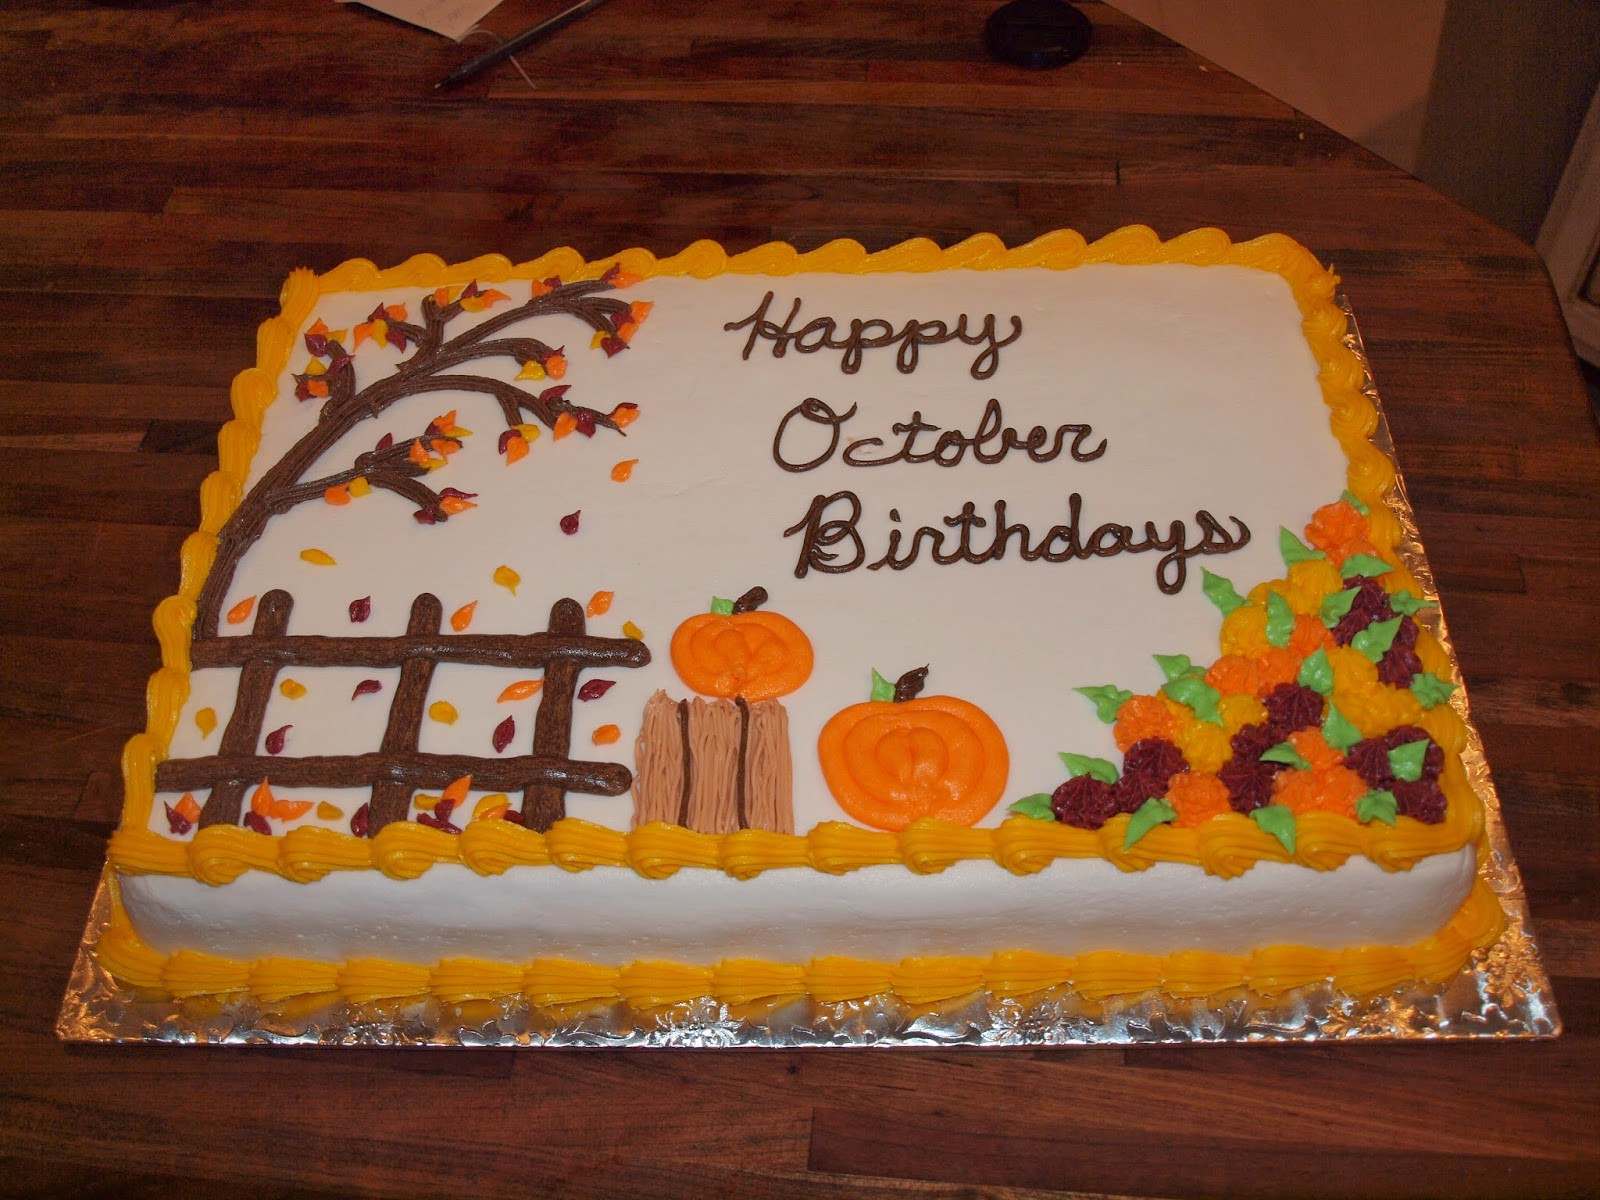 Birthday Sheet Cake  Halloween Themed Sheet Cake Ideas – Fun for Christmas